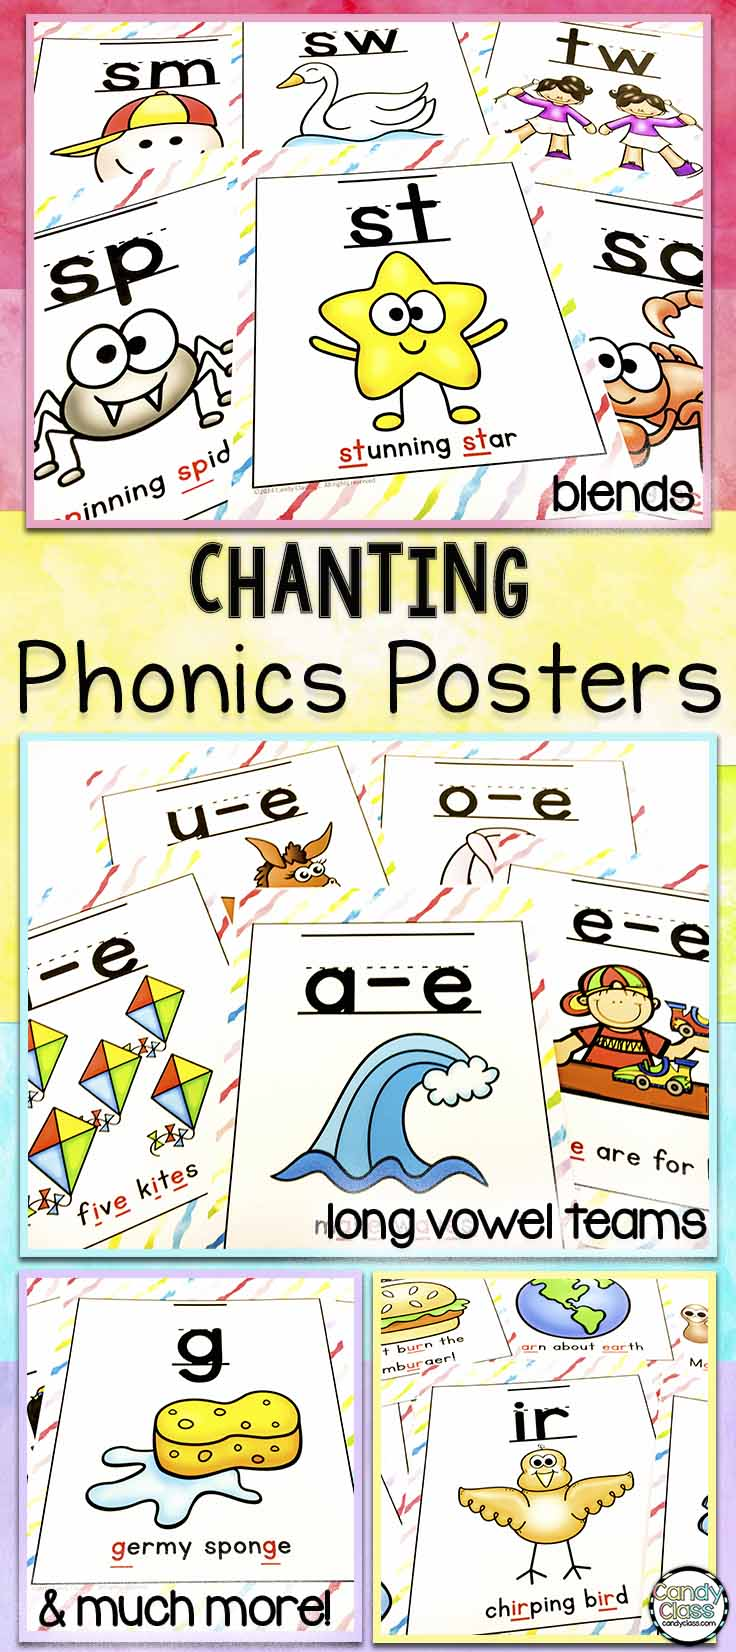 phonics posters with chants